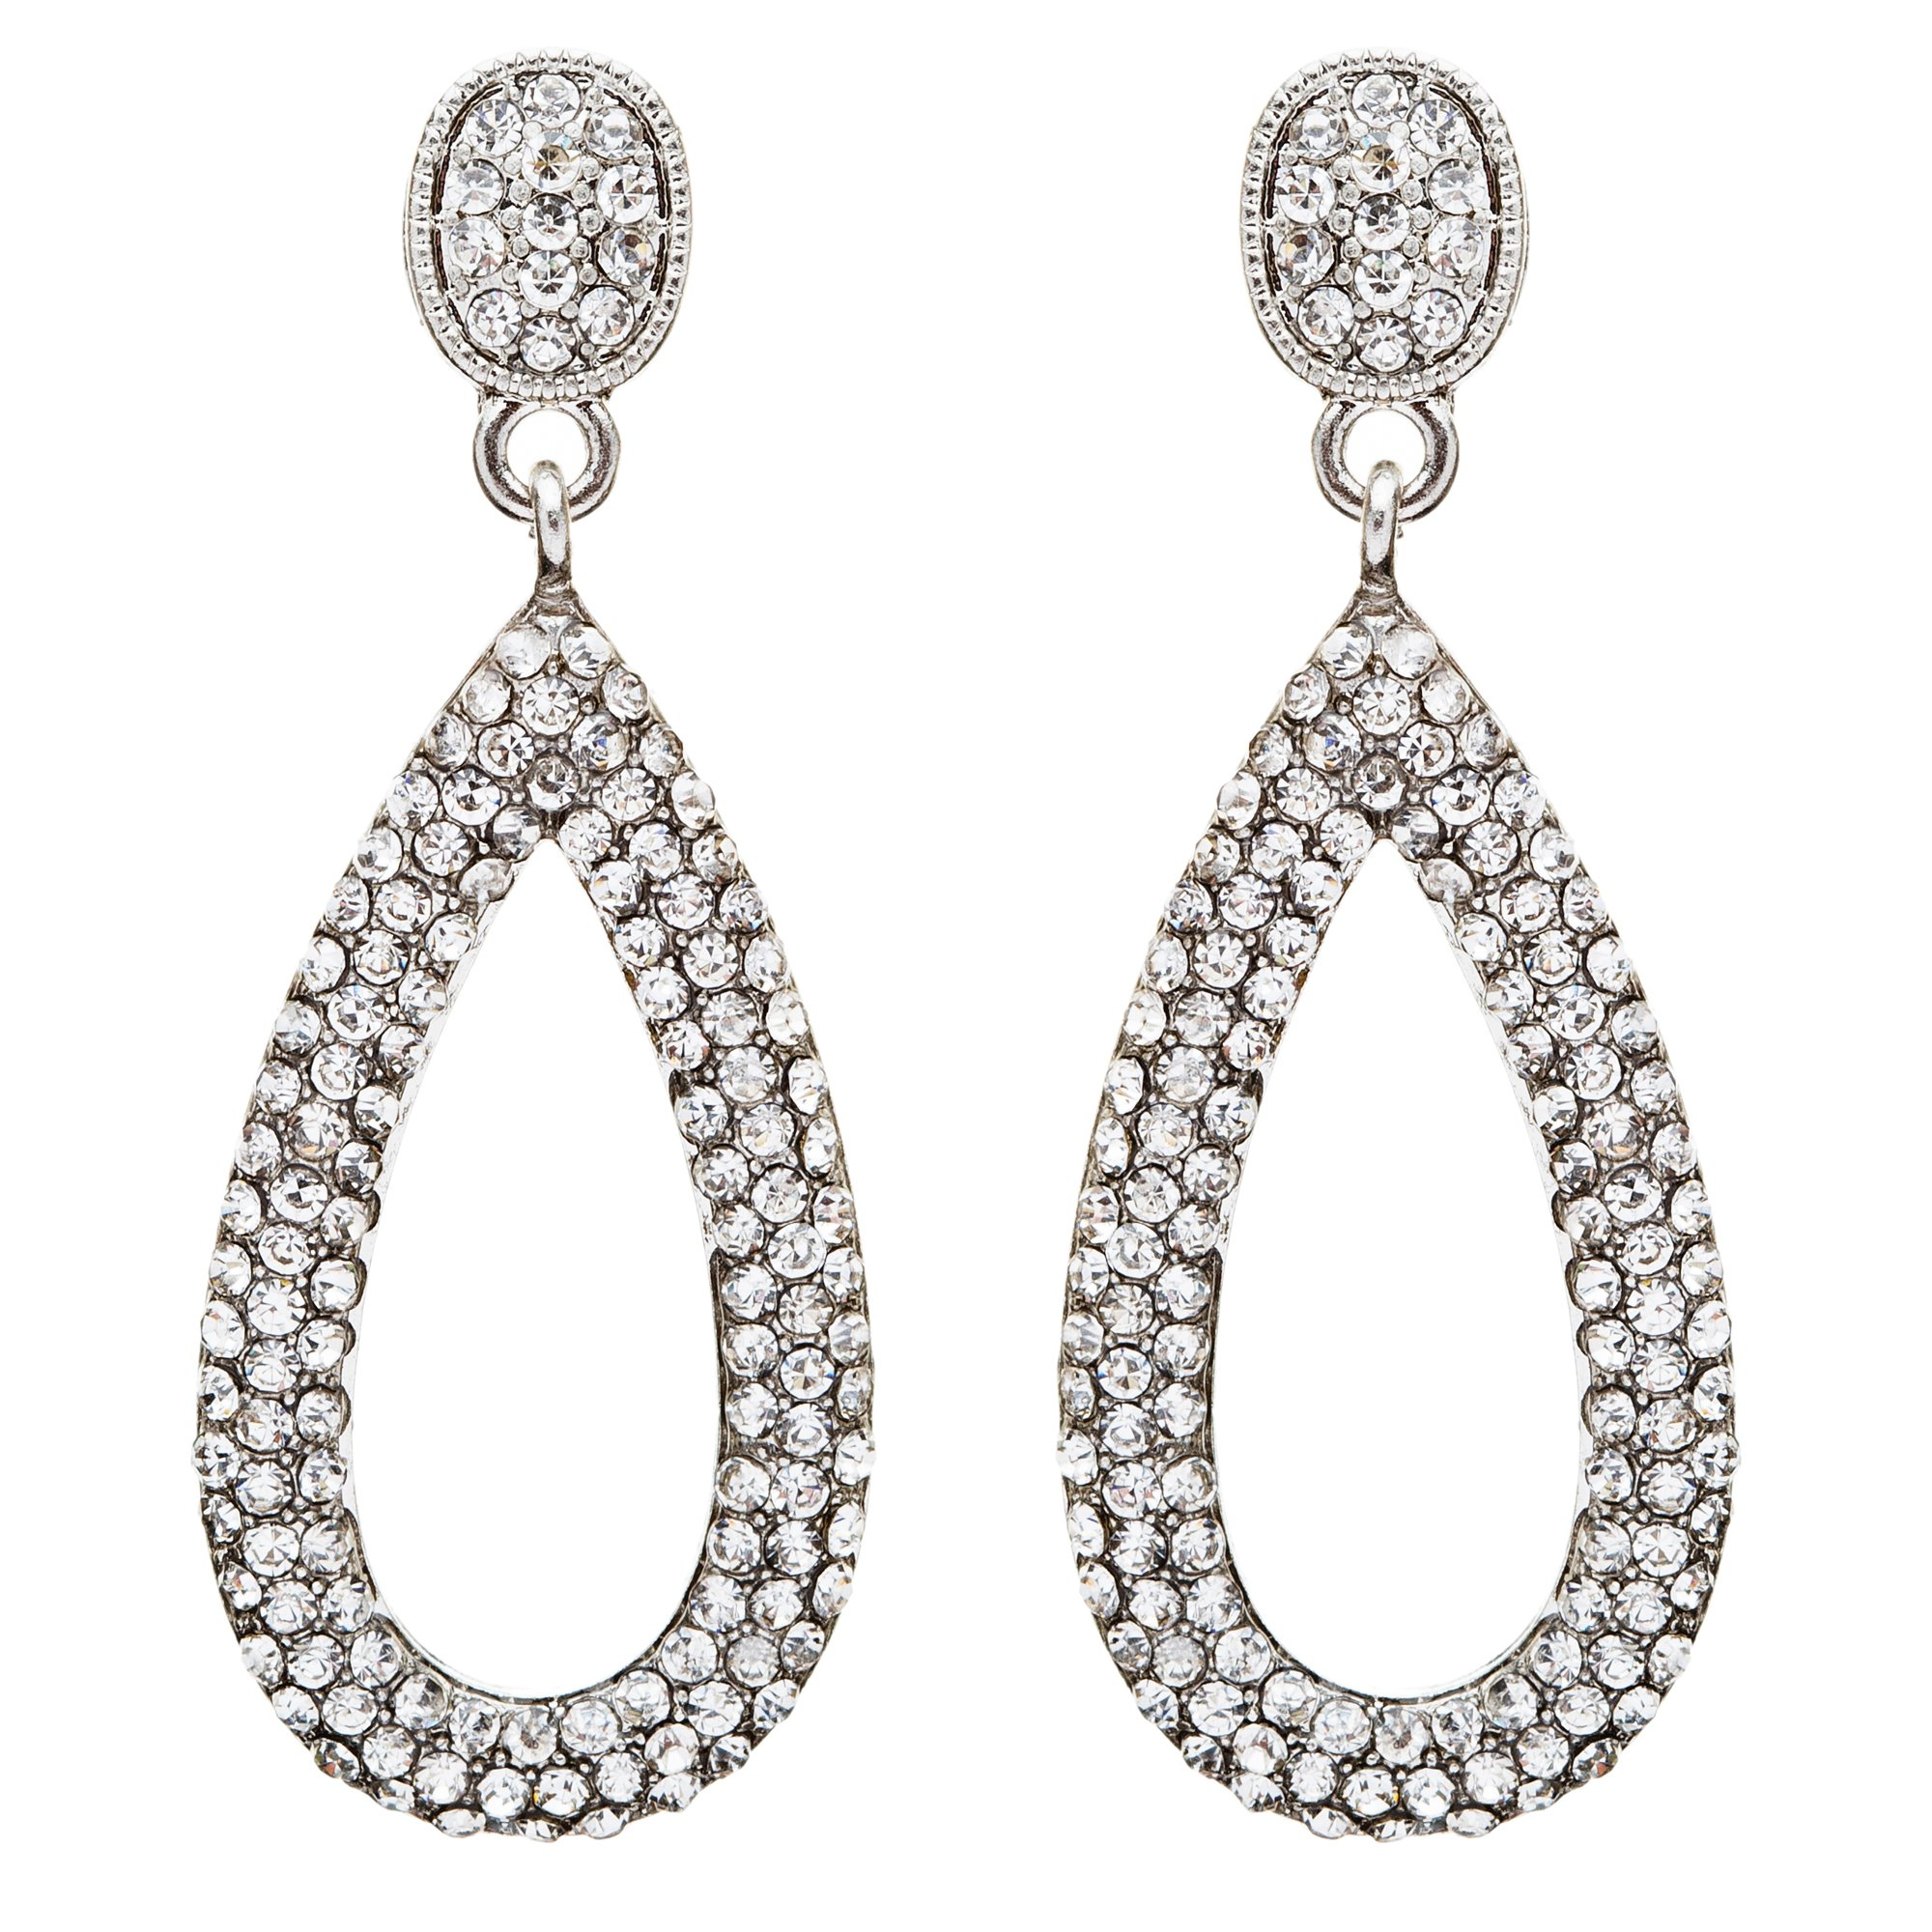 Bridal Wedding Jewelry Crystal Rhinestone Charming Tear Drop Earrings E735Silver by Accessoriesforever (Image #1)